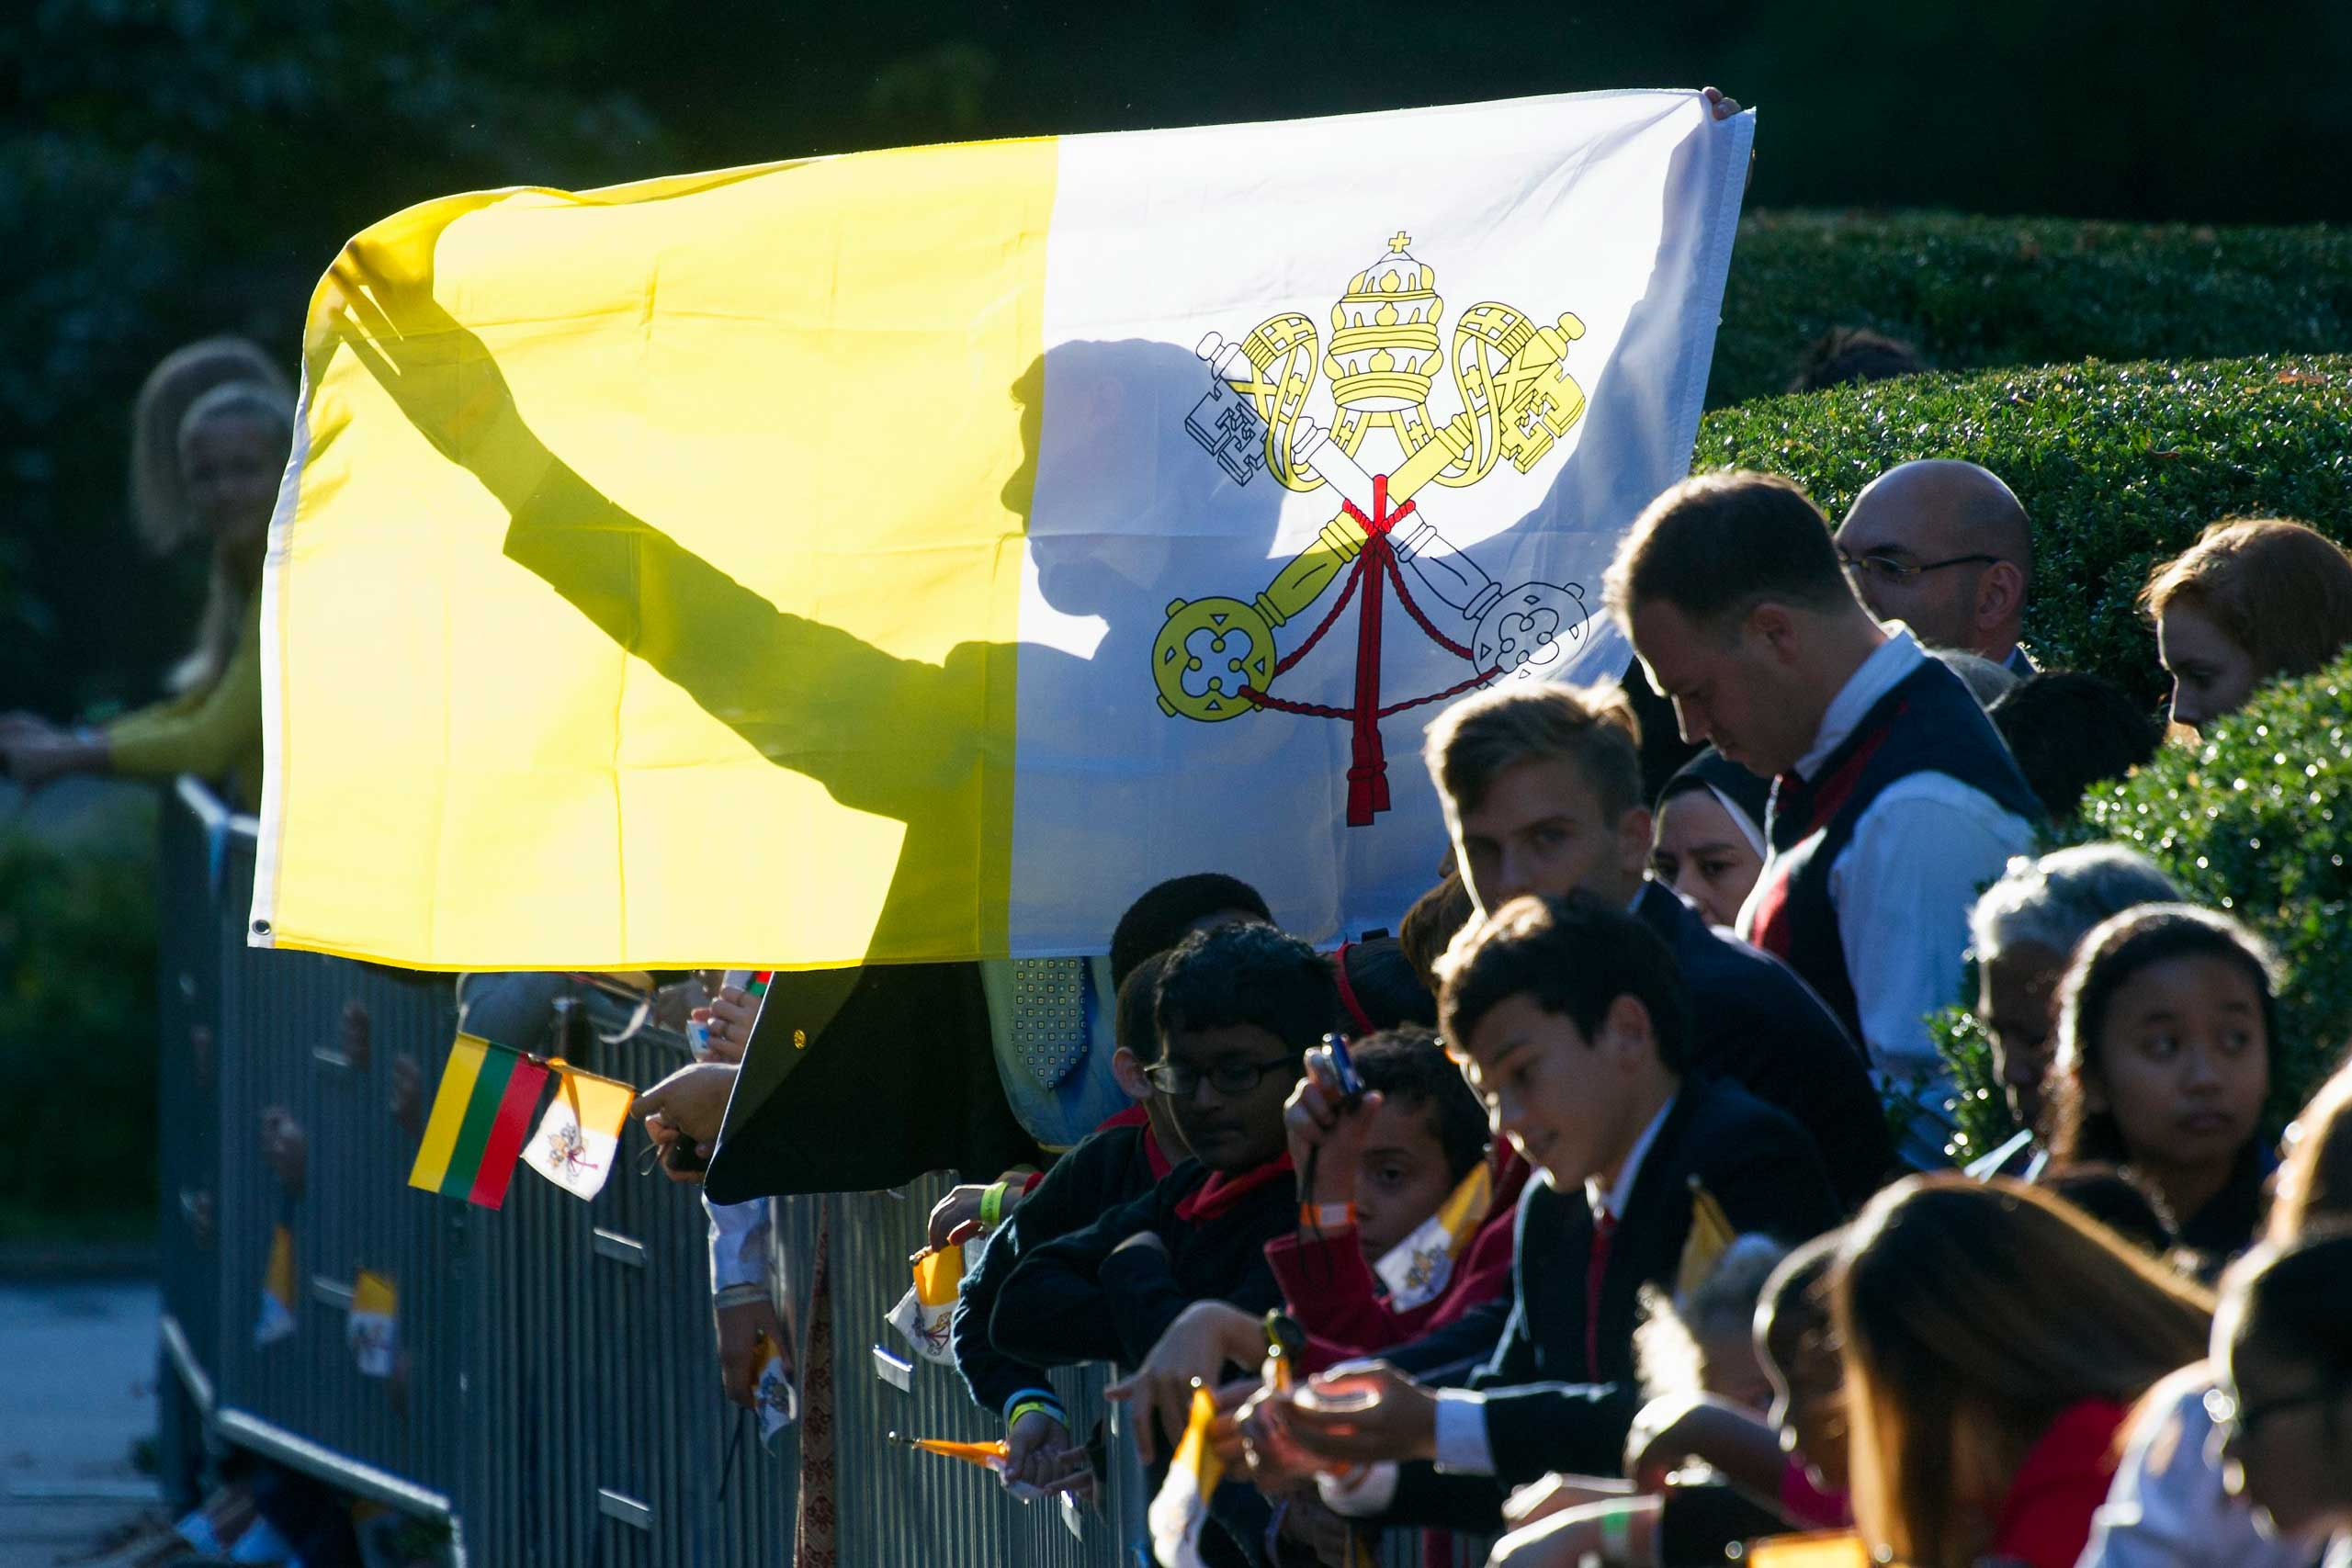 A man holds up a Papal flag as he waits for Pope Francis departure from the Apostolic Nunciature, the Vatican's diplomatic mission in Washington, on Sept. 23, 2015.